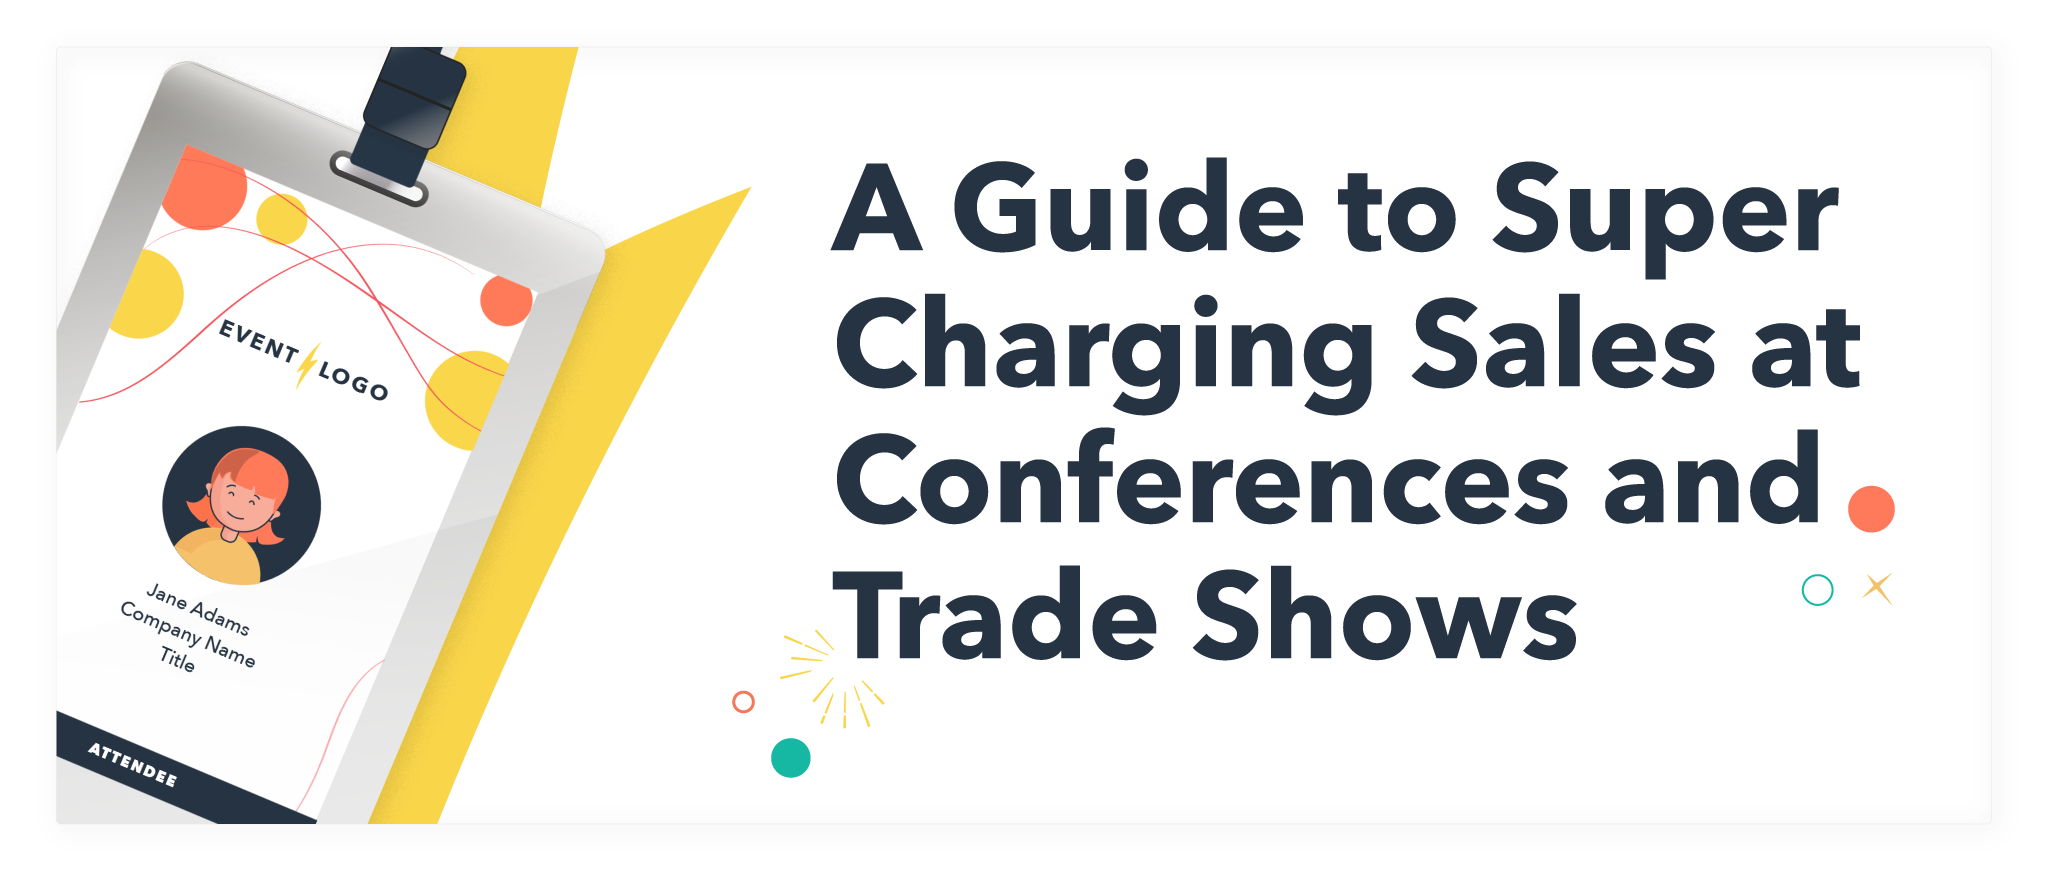 A Guide To Super Charging Sales at Conferences and Trade Shows